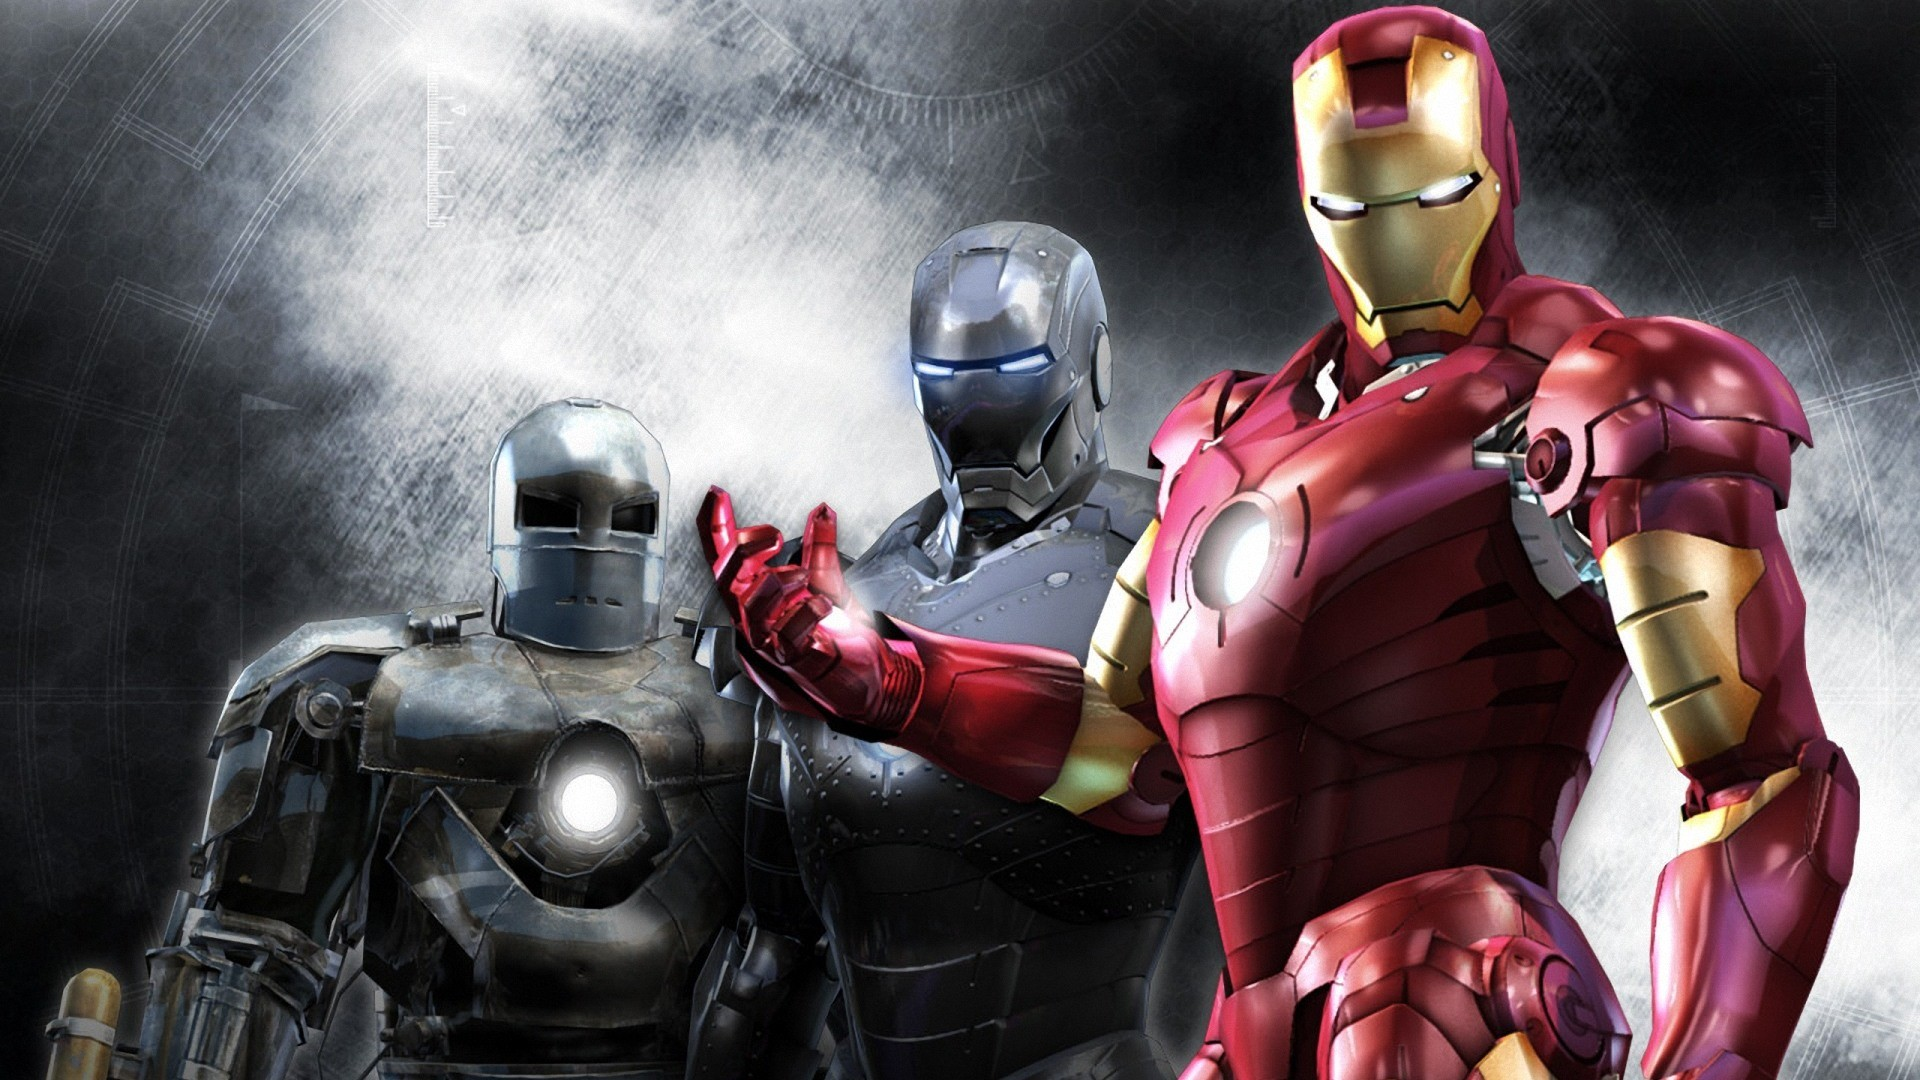 WallpapersWide Free Download IRON MAN  Full HD Wallpapers  free download wallpaper 1920x1080